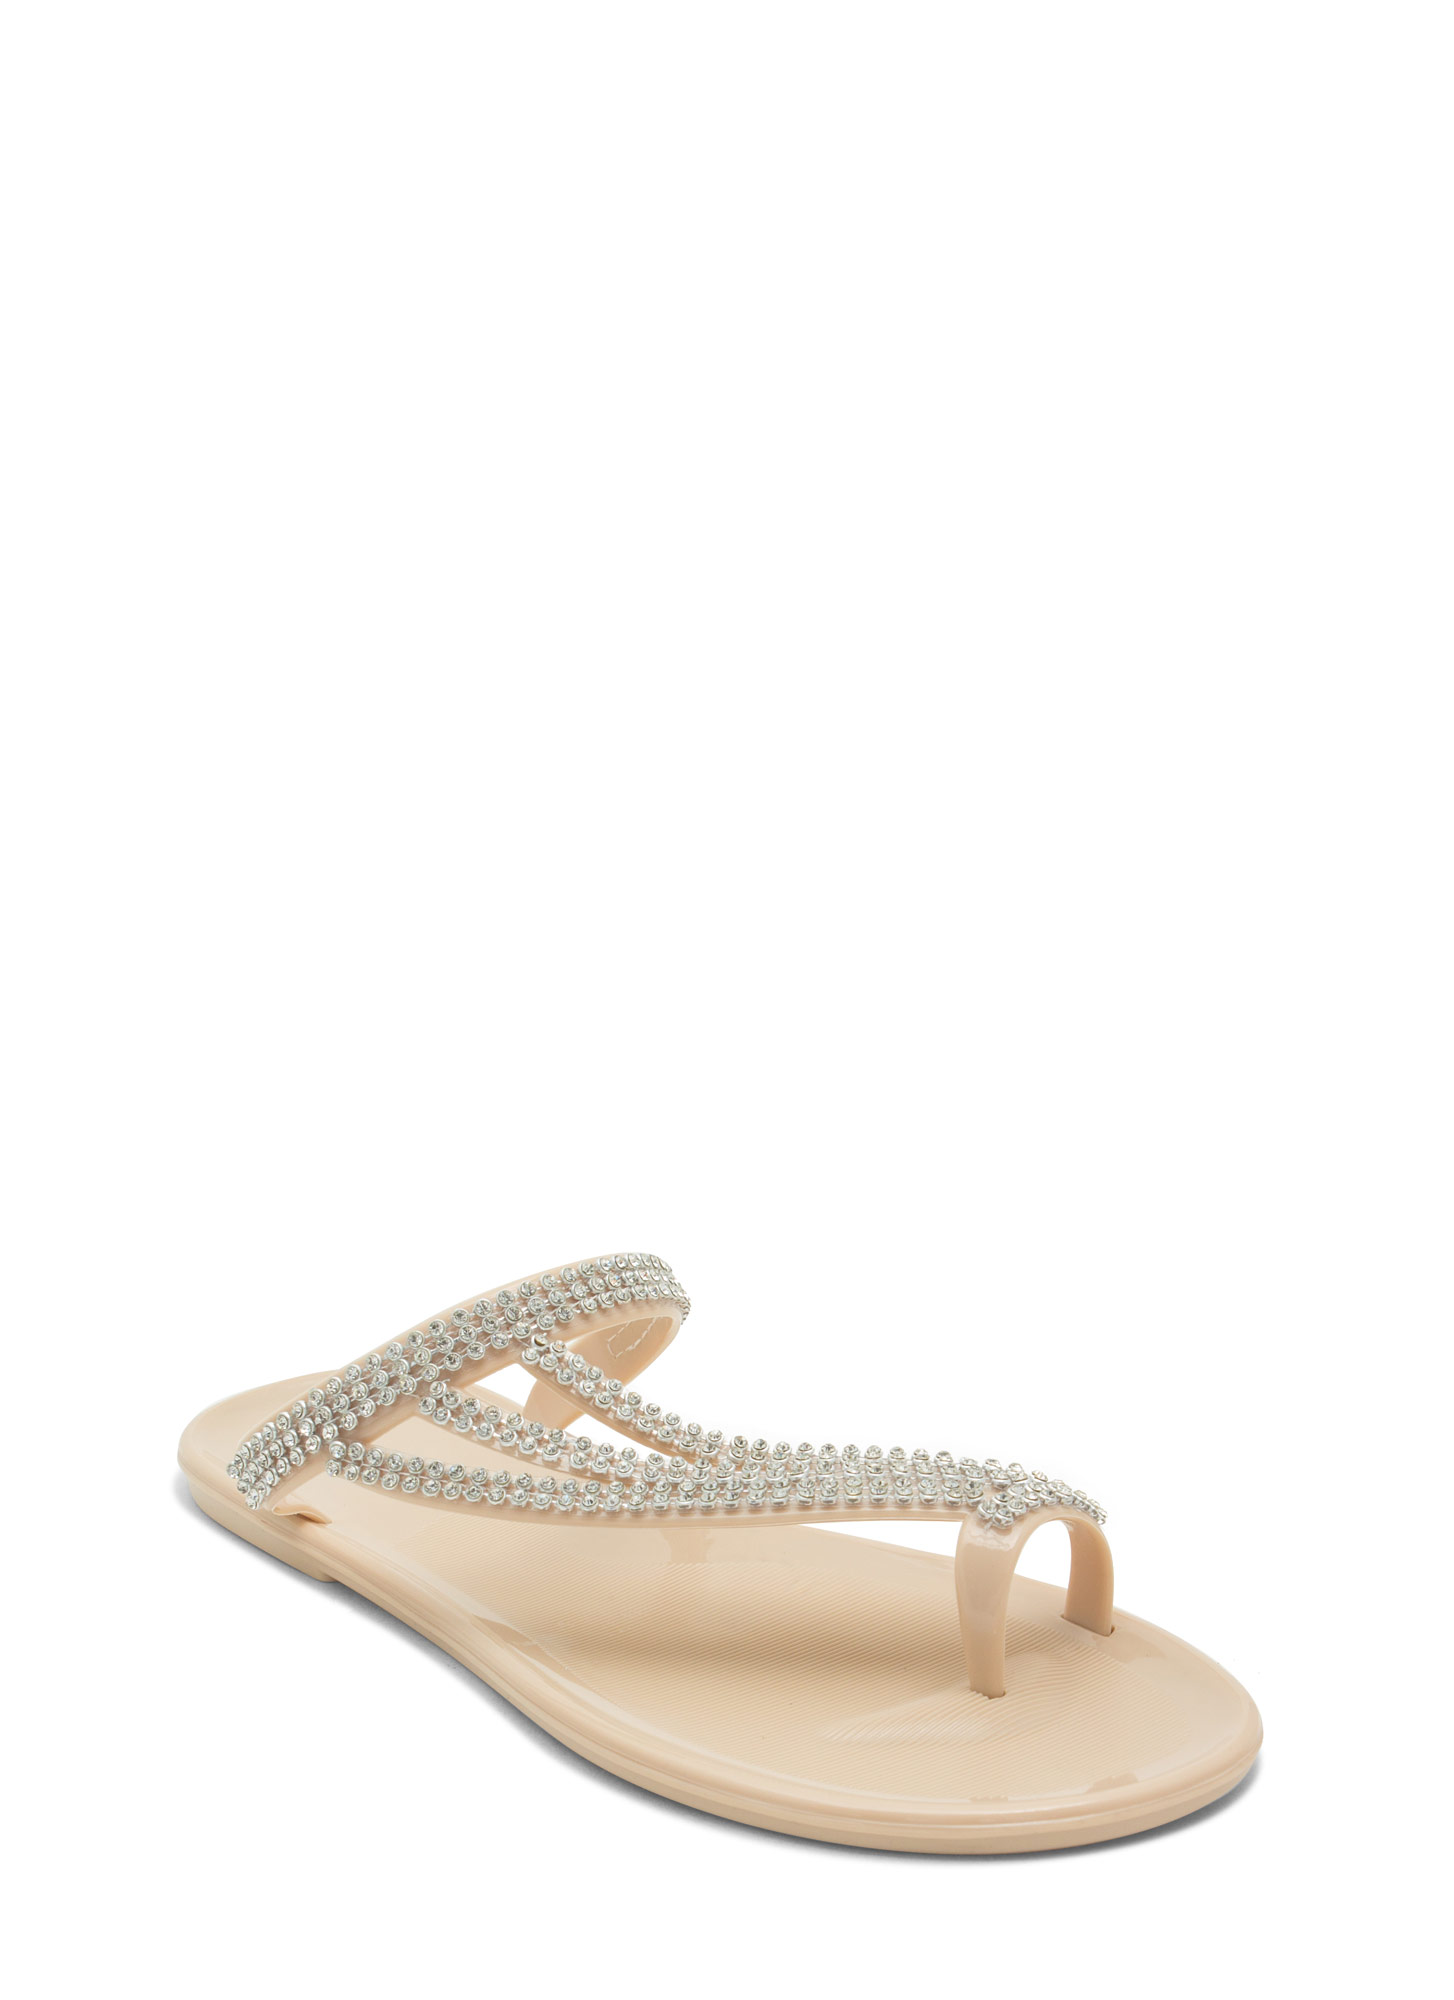 Bling Ringing It Jelly Sandals NUDE